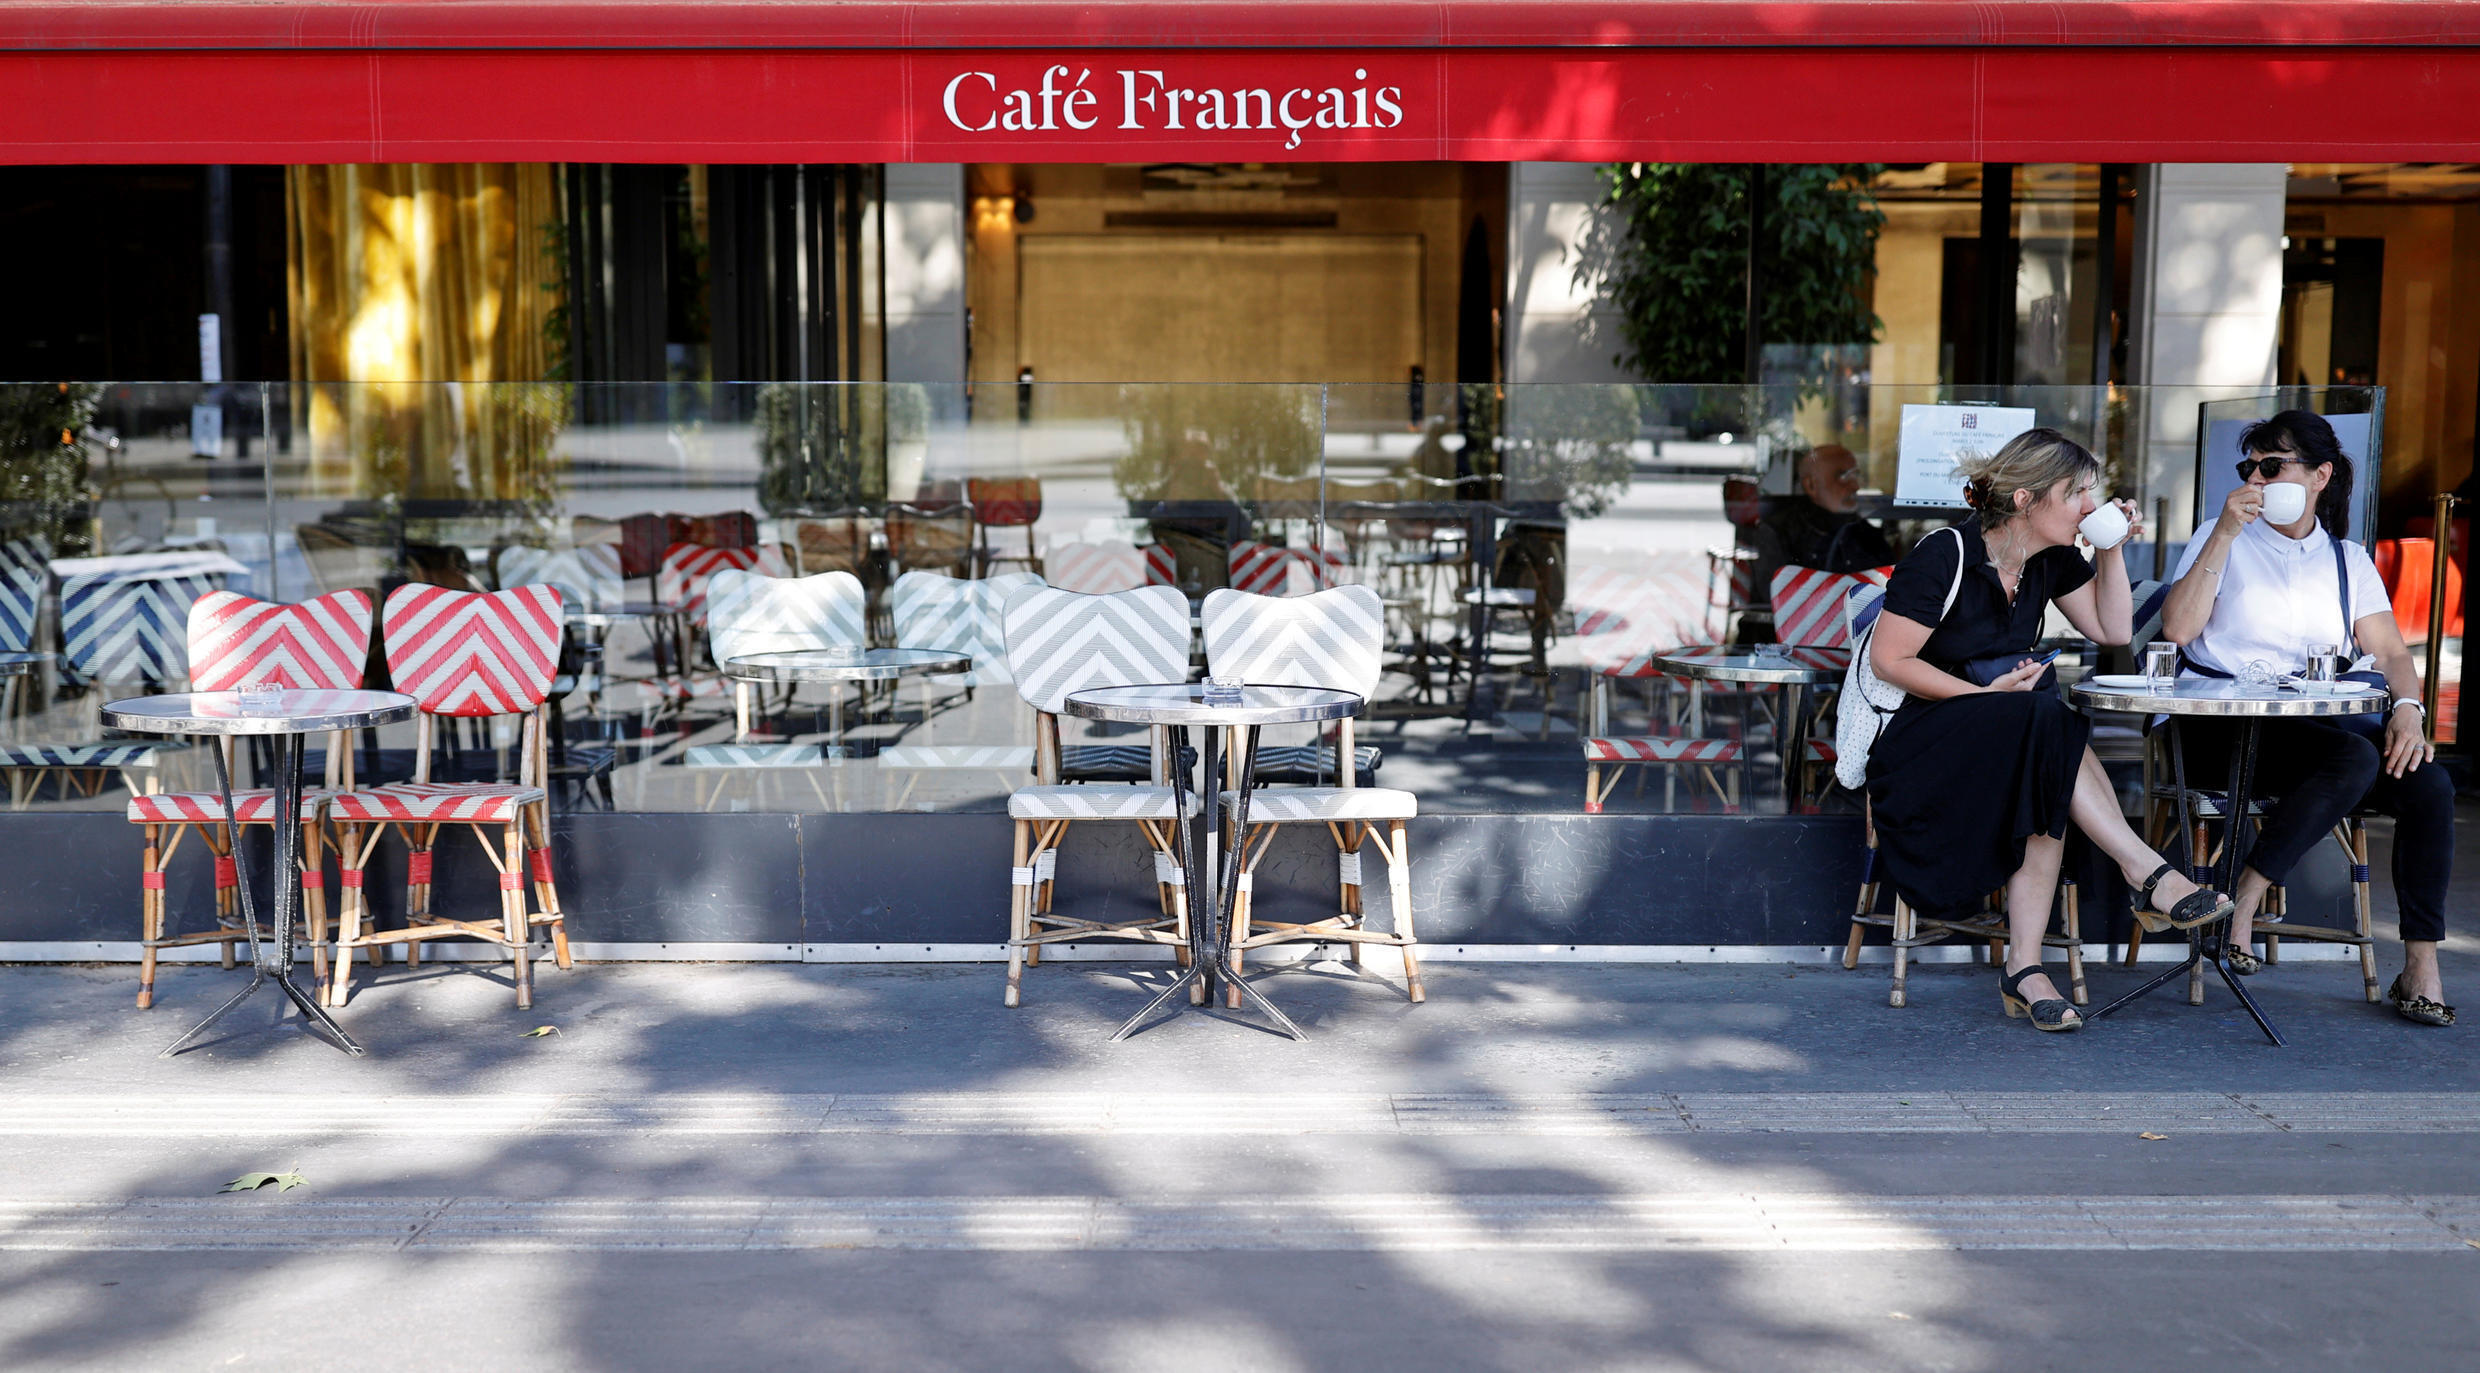 Women sit in Café Français near Bastille, as restaurants and cafes reopen following the coronavirus outbreak, Paris on 2 June, 2020.